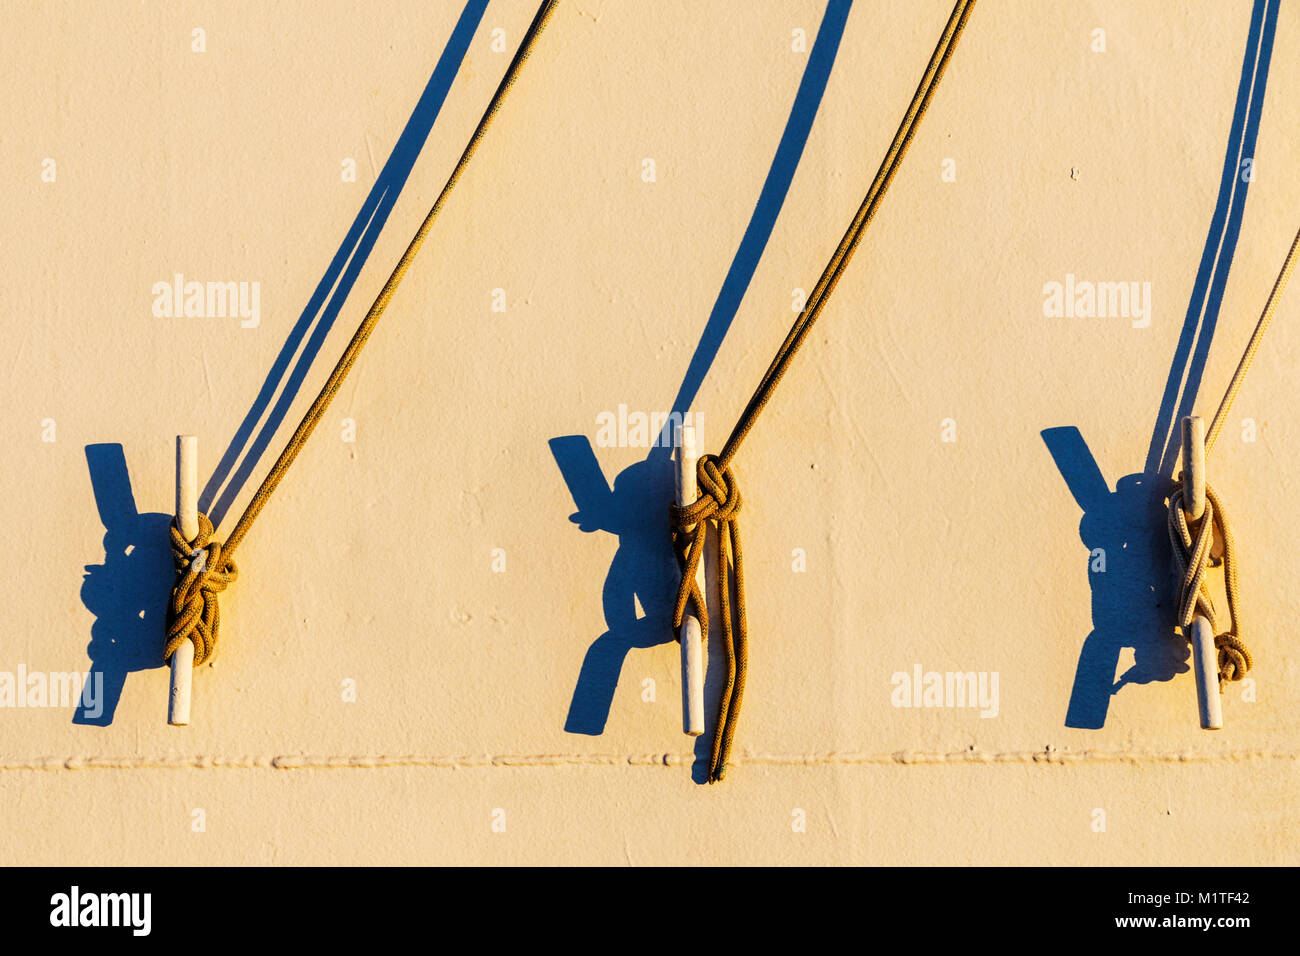 Rigging detail on passenger ship Ocean Adventurer carries alpine mountaineering skiers to Antarctica - Stock Image